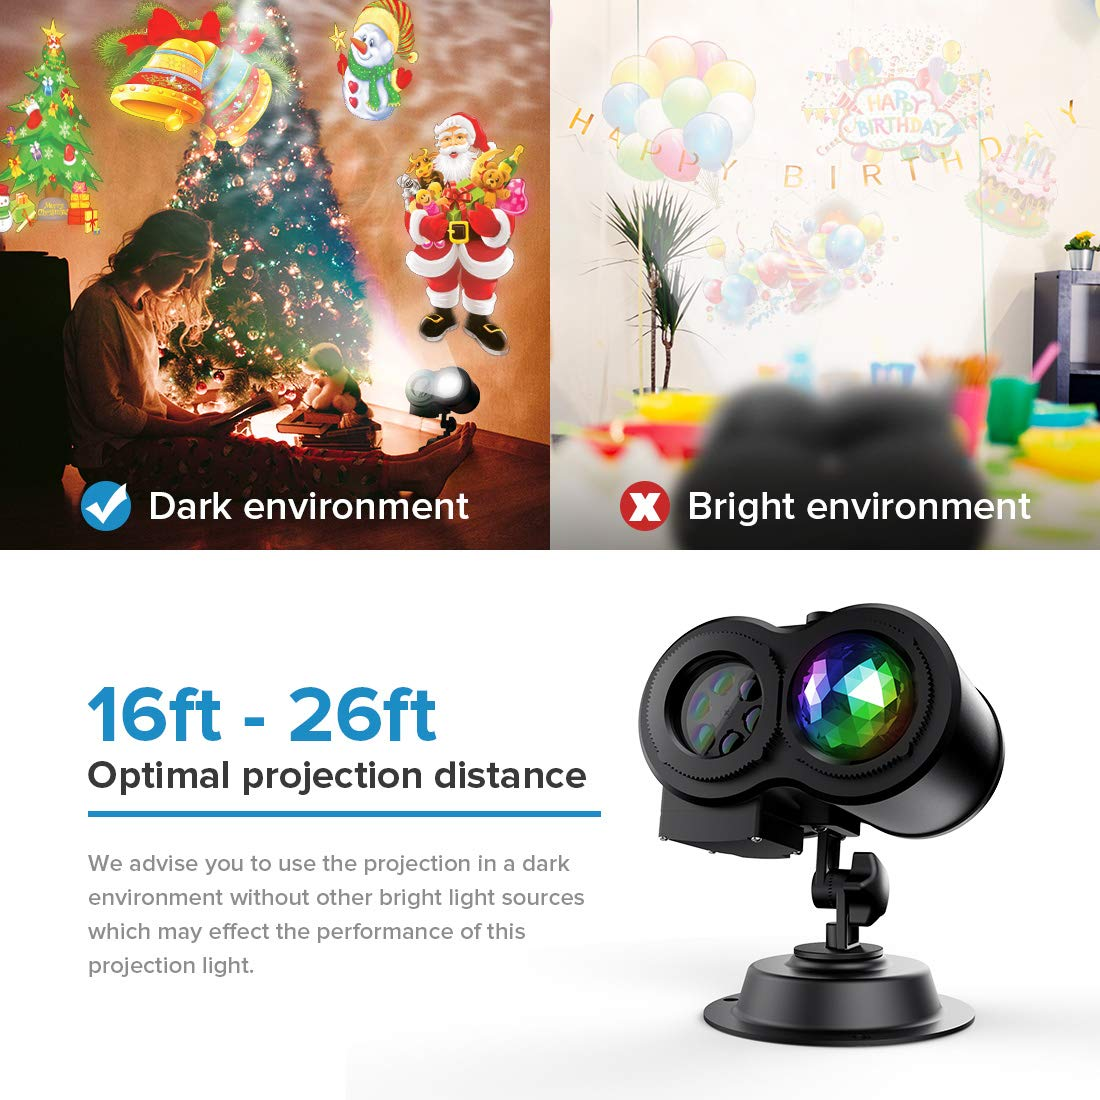 TAOCOCO Christmas Halloween Light Projector, Led Projection Light, 2 in 1 Outdoor/Indoor Decoration Holiday Lights for Party Decorative, Waterproof with 12 Slides Patterns Remote Controller